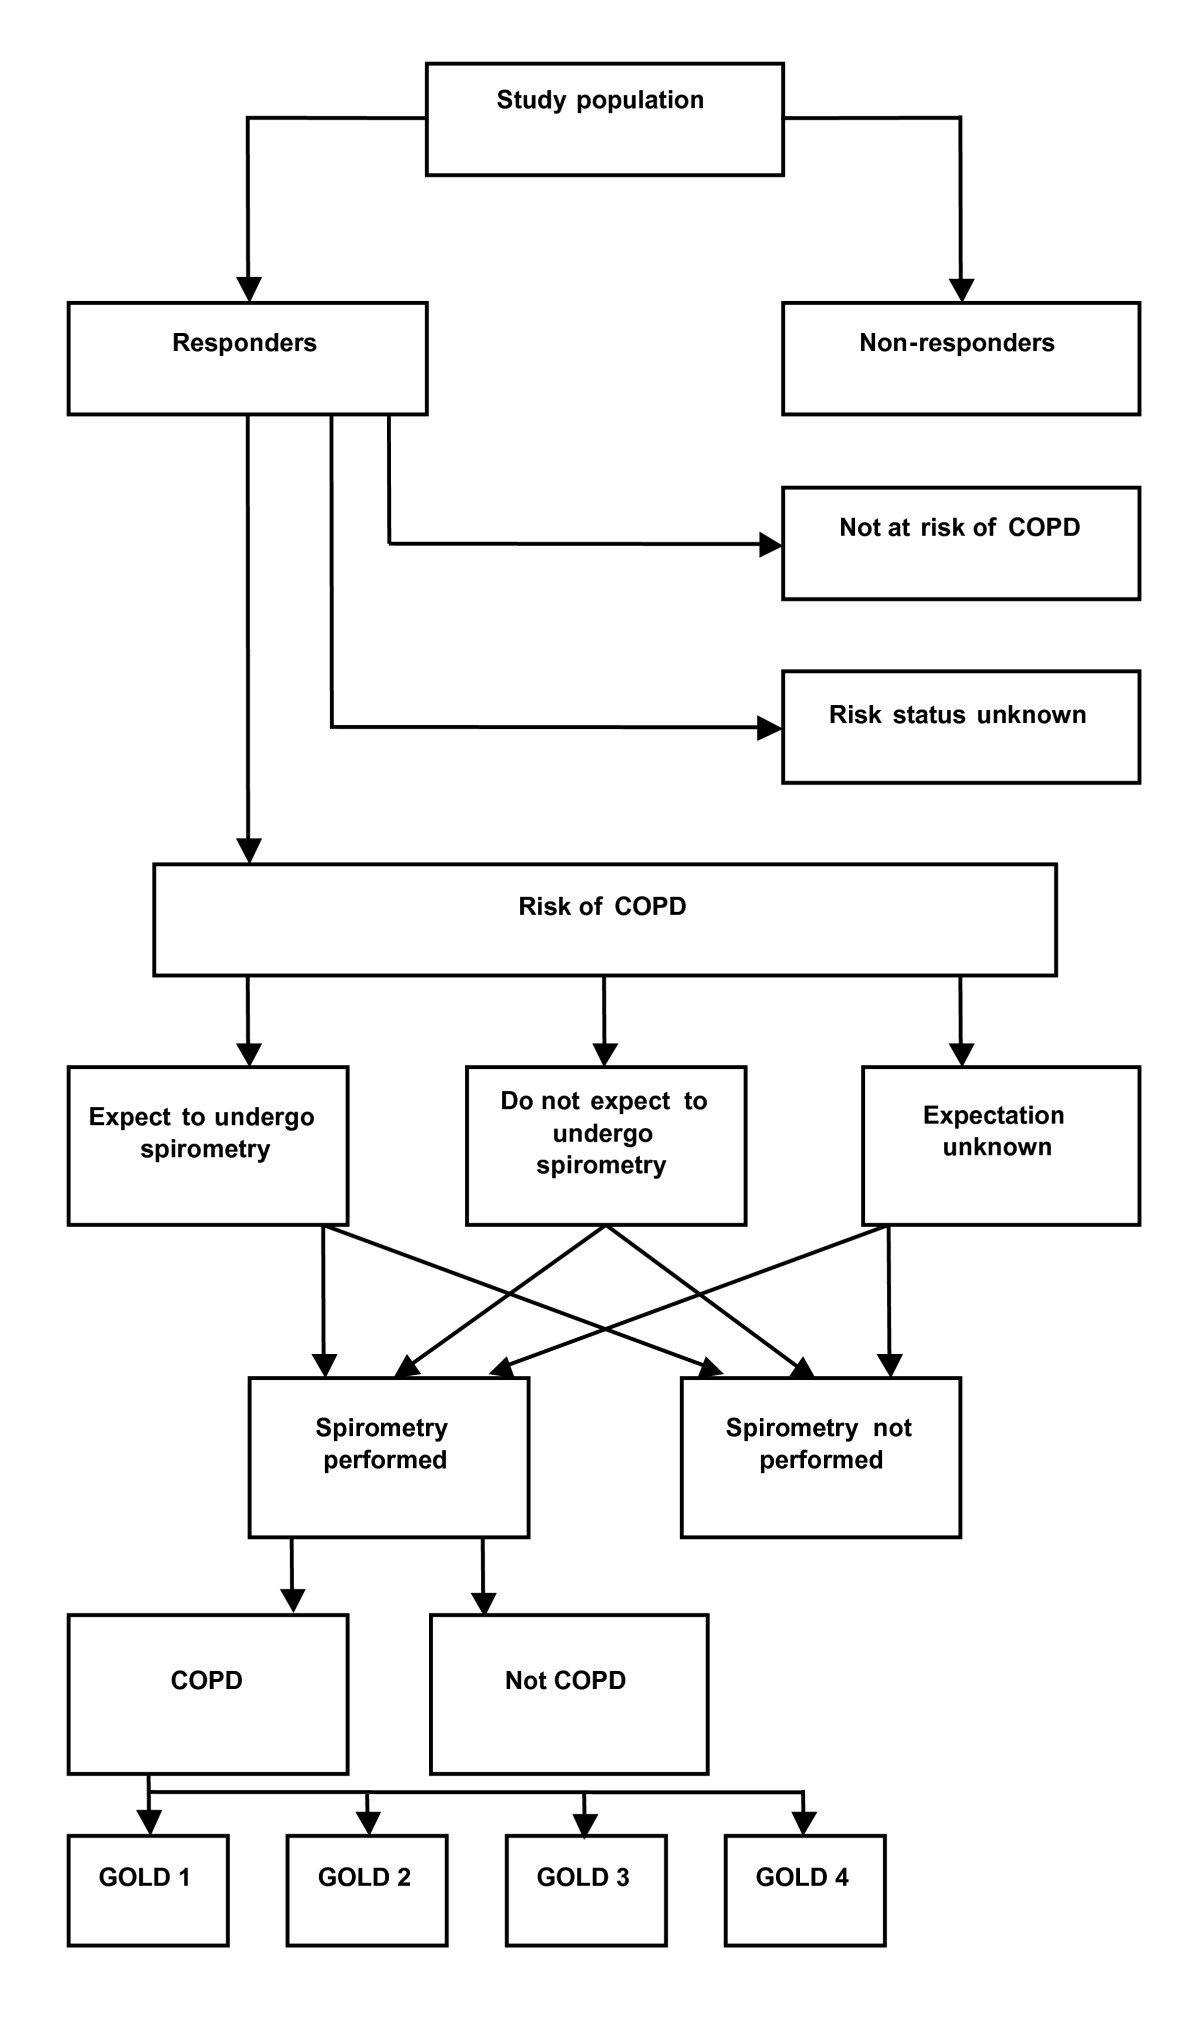 http://static-content.springer.com/image/art%3A10.1186%2F1471-2458-10-524/MediaObjects/12889_2010_Article_2435_Fig1_HTML.jpg